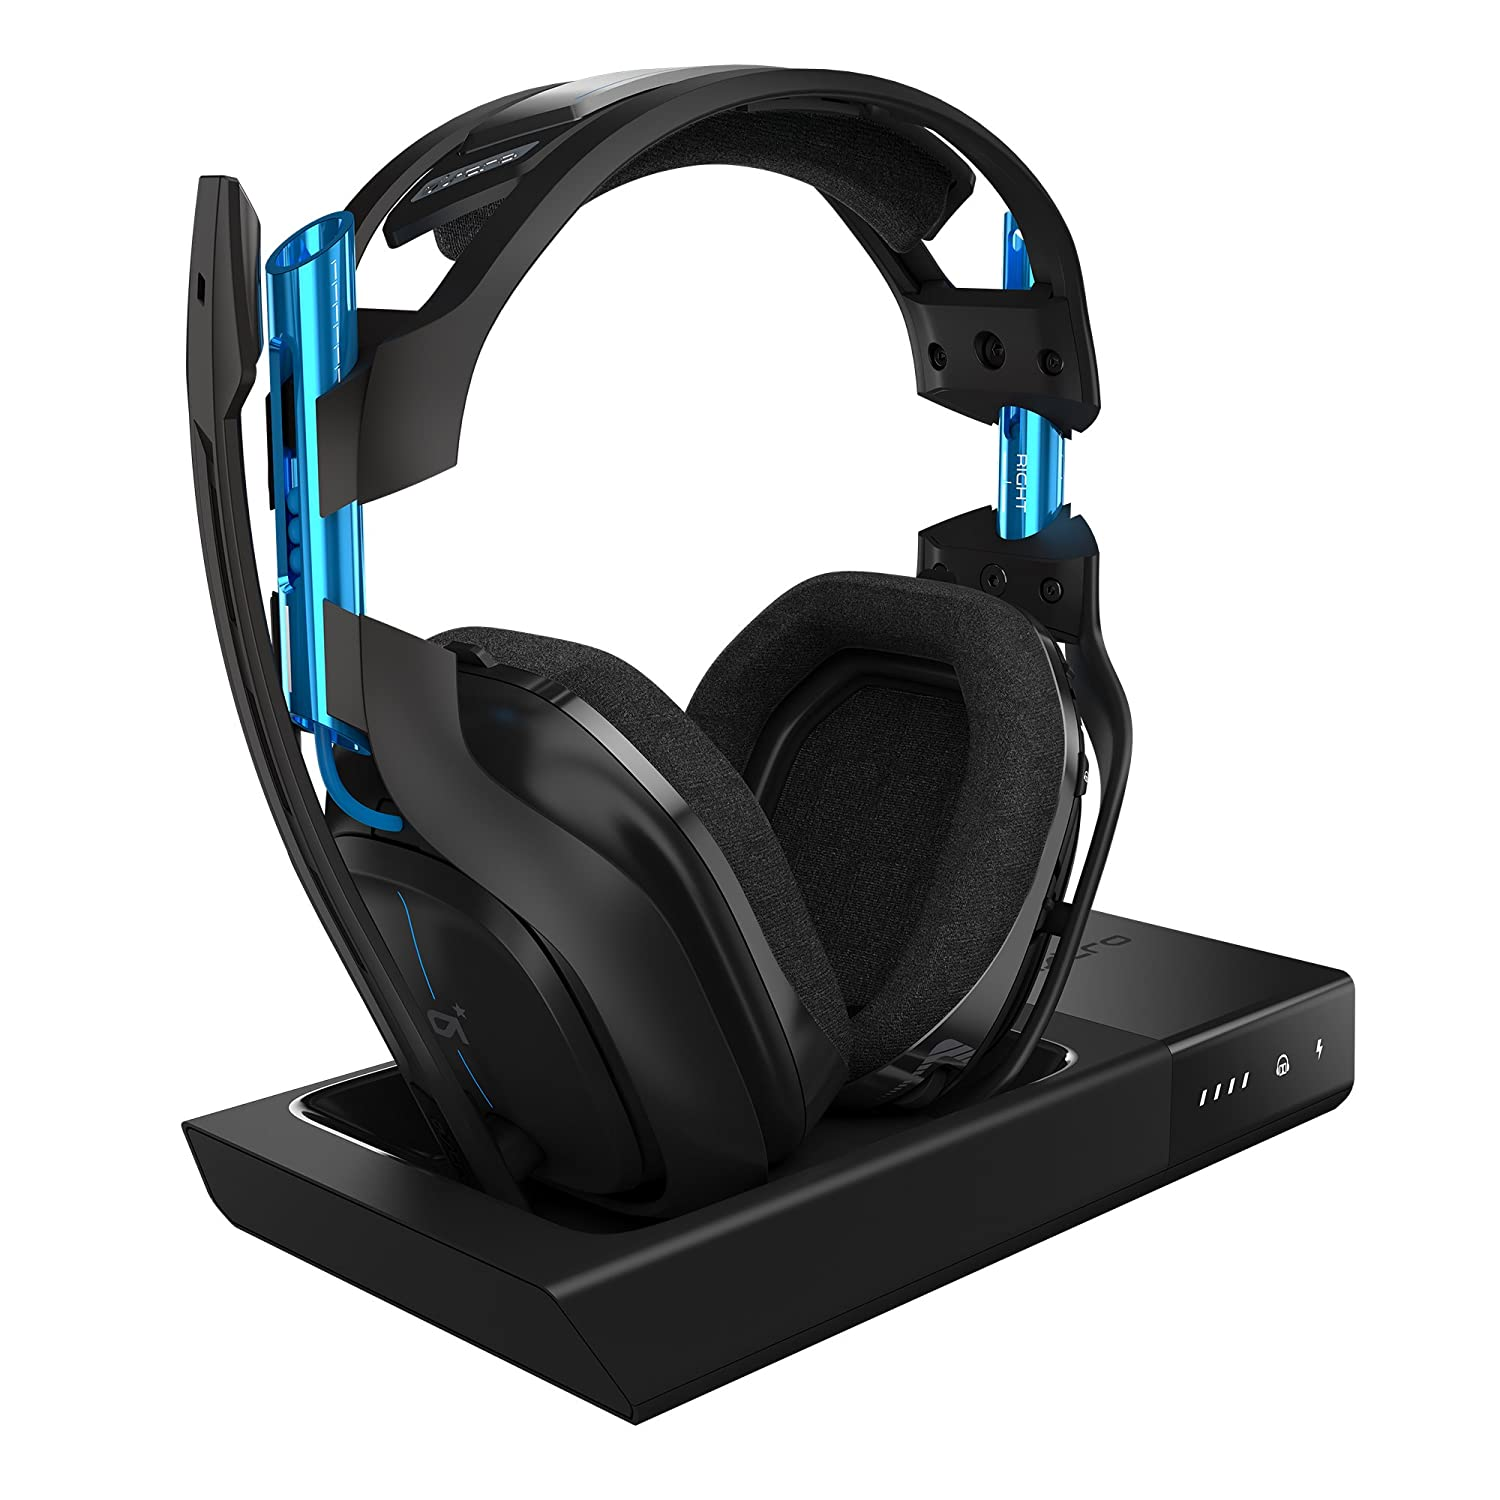 Cascos inalambricos gaming https://amzn.to/2YCDHXL